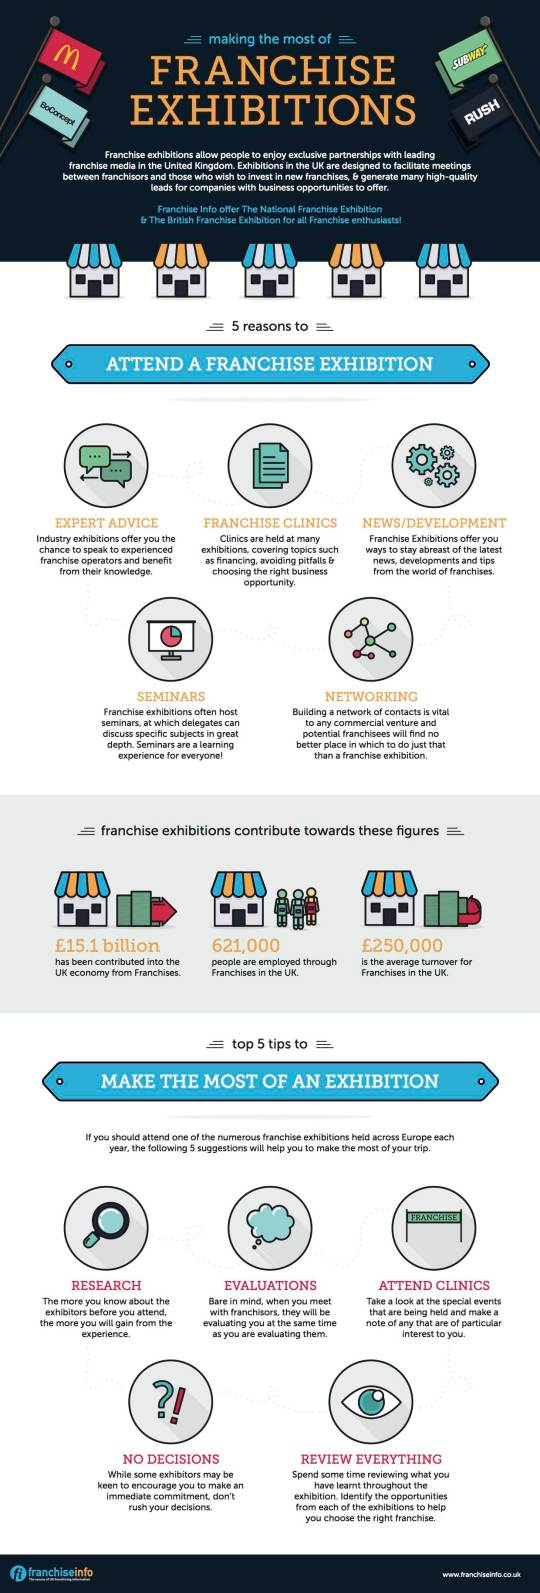 FranchiseInfo Infographic